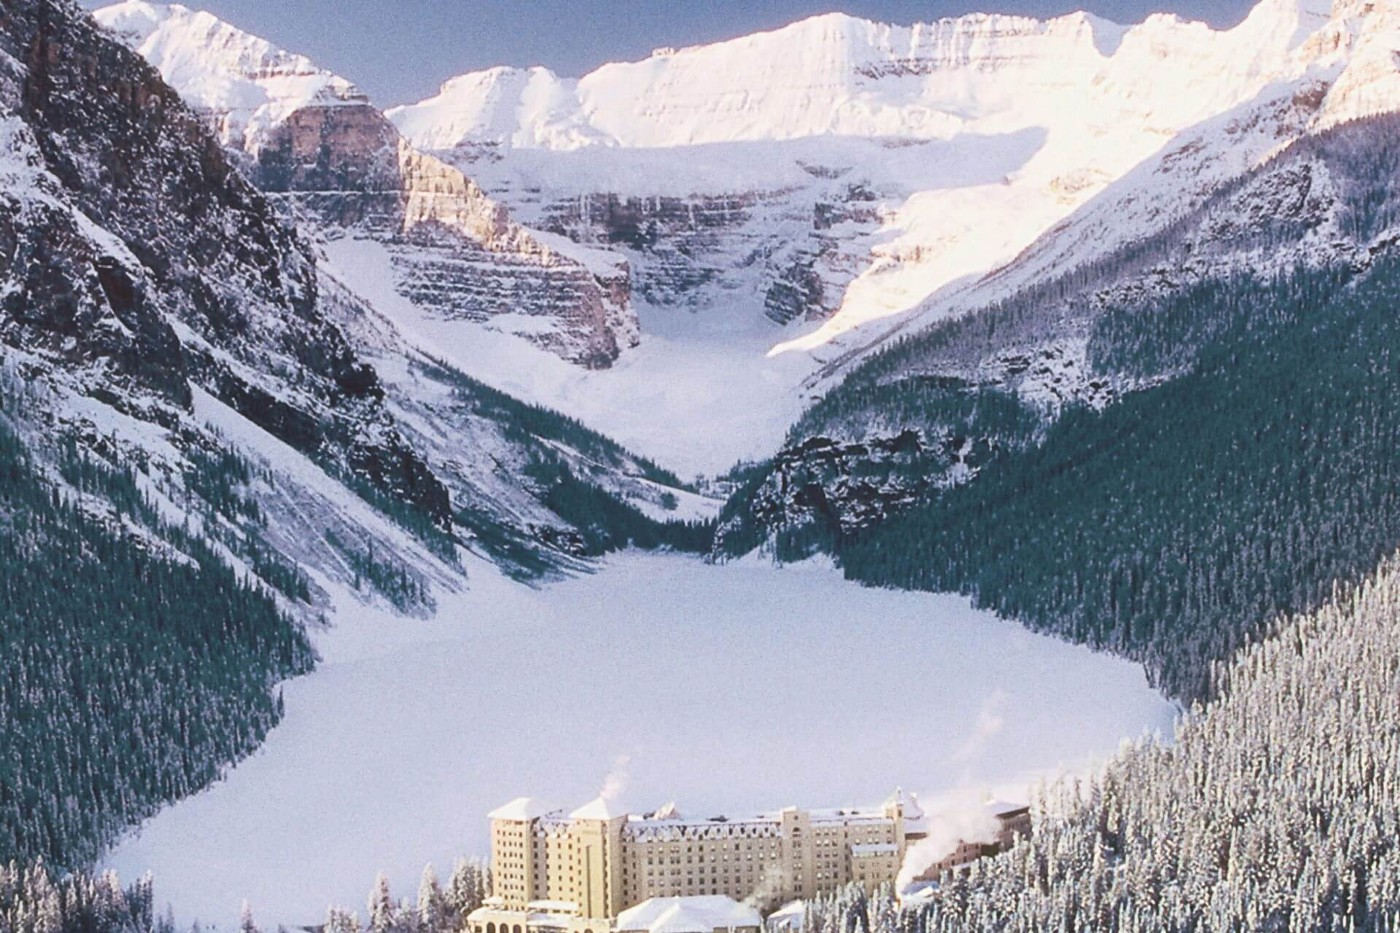 A hotel in a snowy valley with snow-covered evergreen trees in the foreground and snowy mountains in the background.